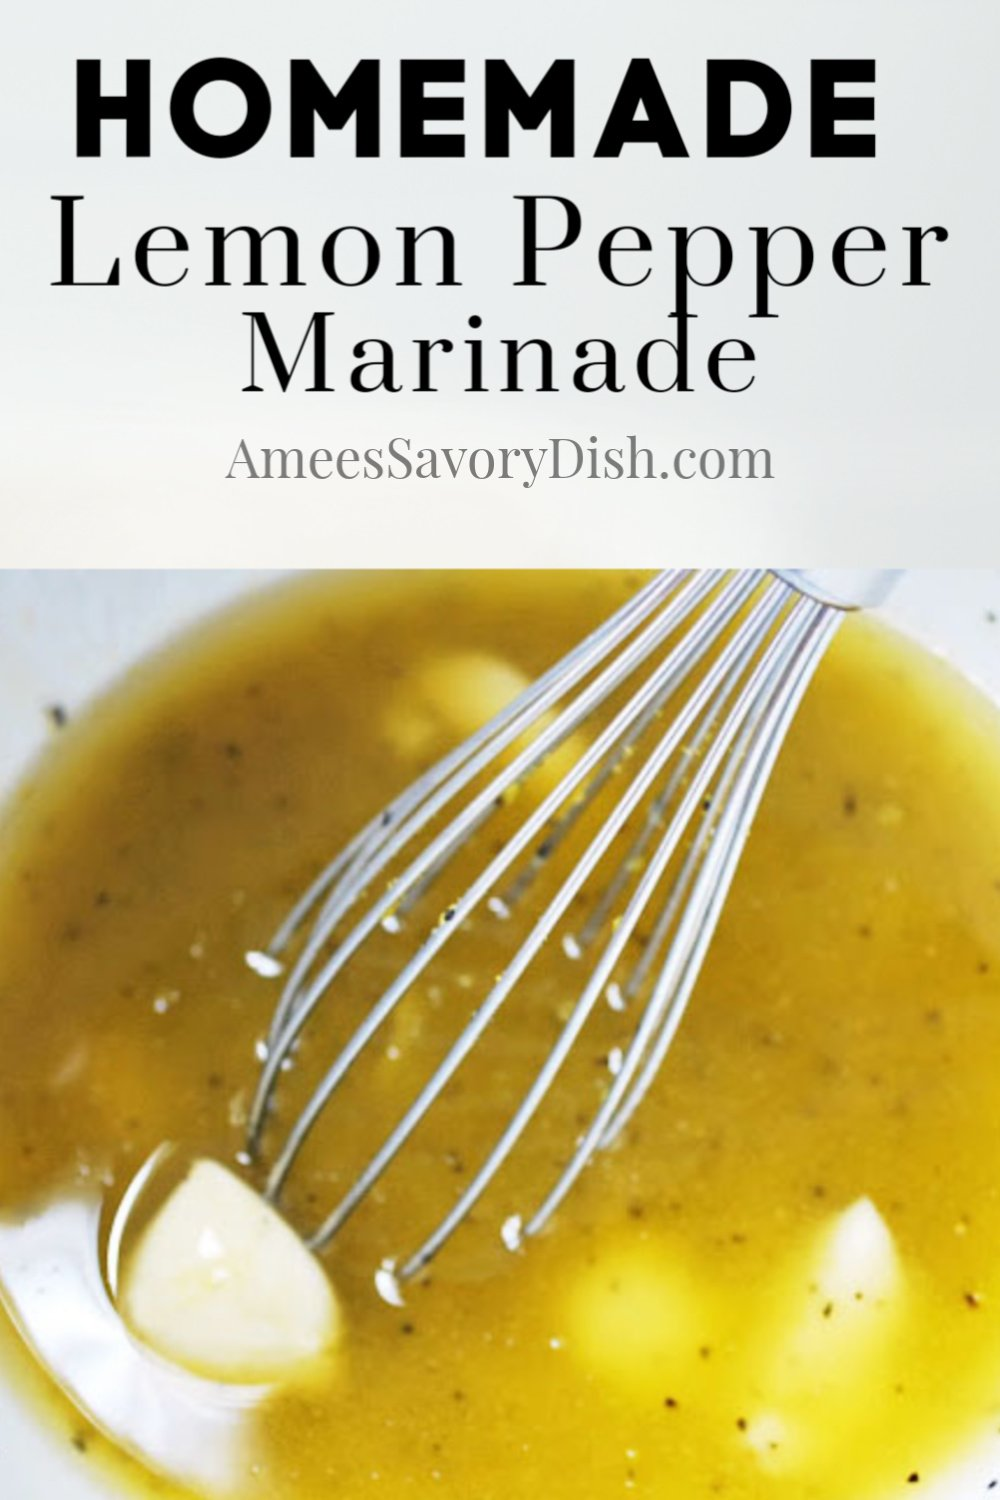 Lemon pepper marinade is a simple but flavorful marinade for chicken or shrimp. This easy marinade recipe can also be used to make a delicious, tangy salad dressing! #marinade #lemonpeppermarinade #chickenmarinade via @Ameessavorydish